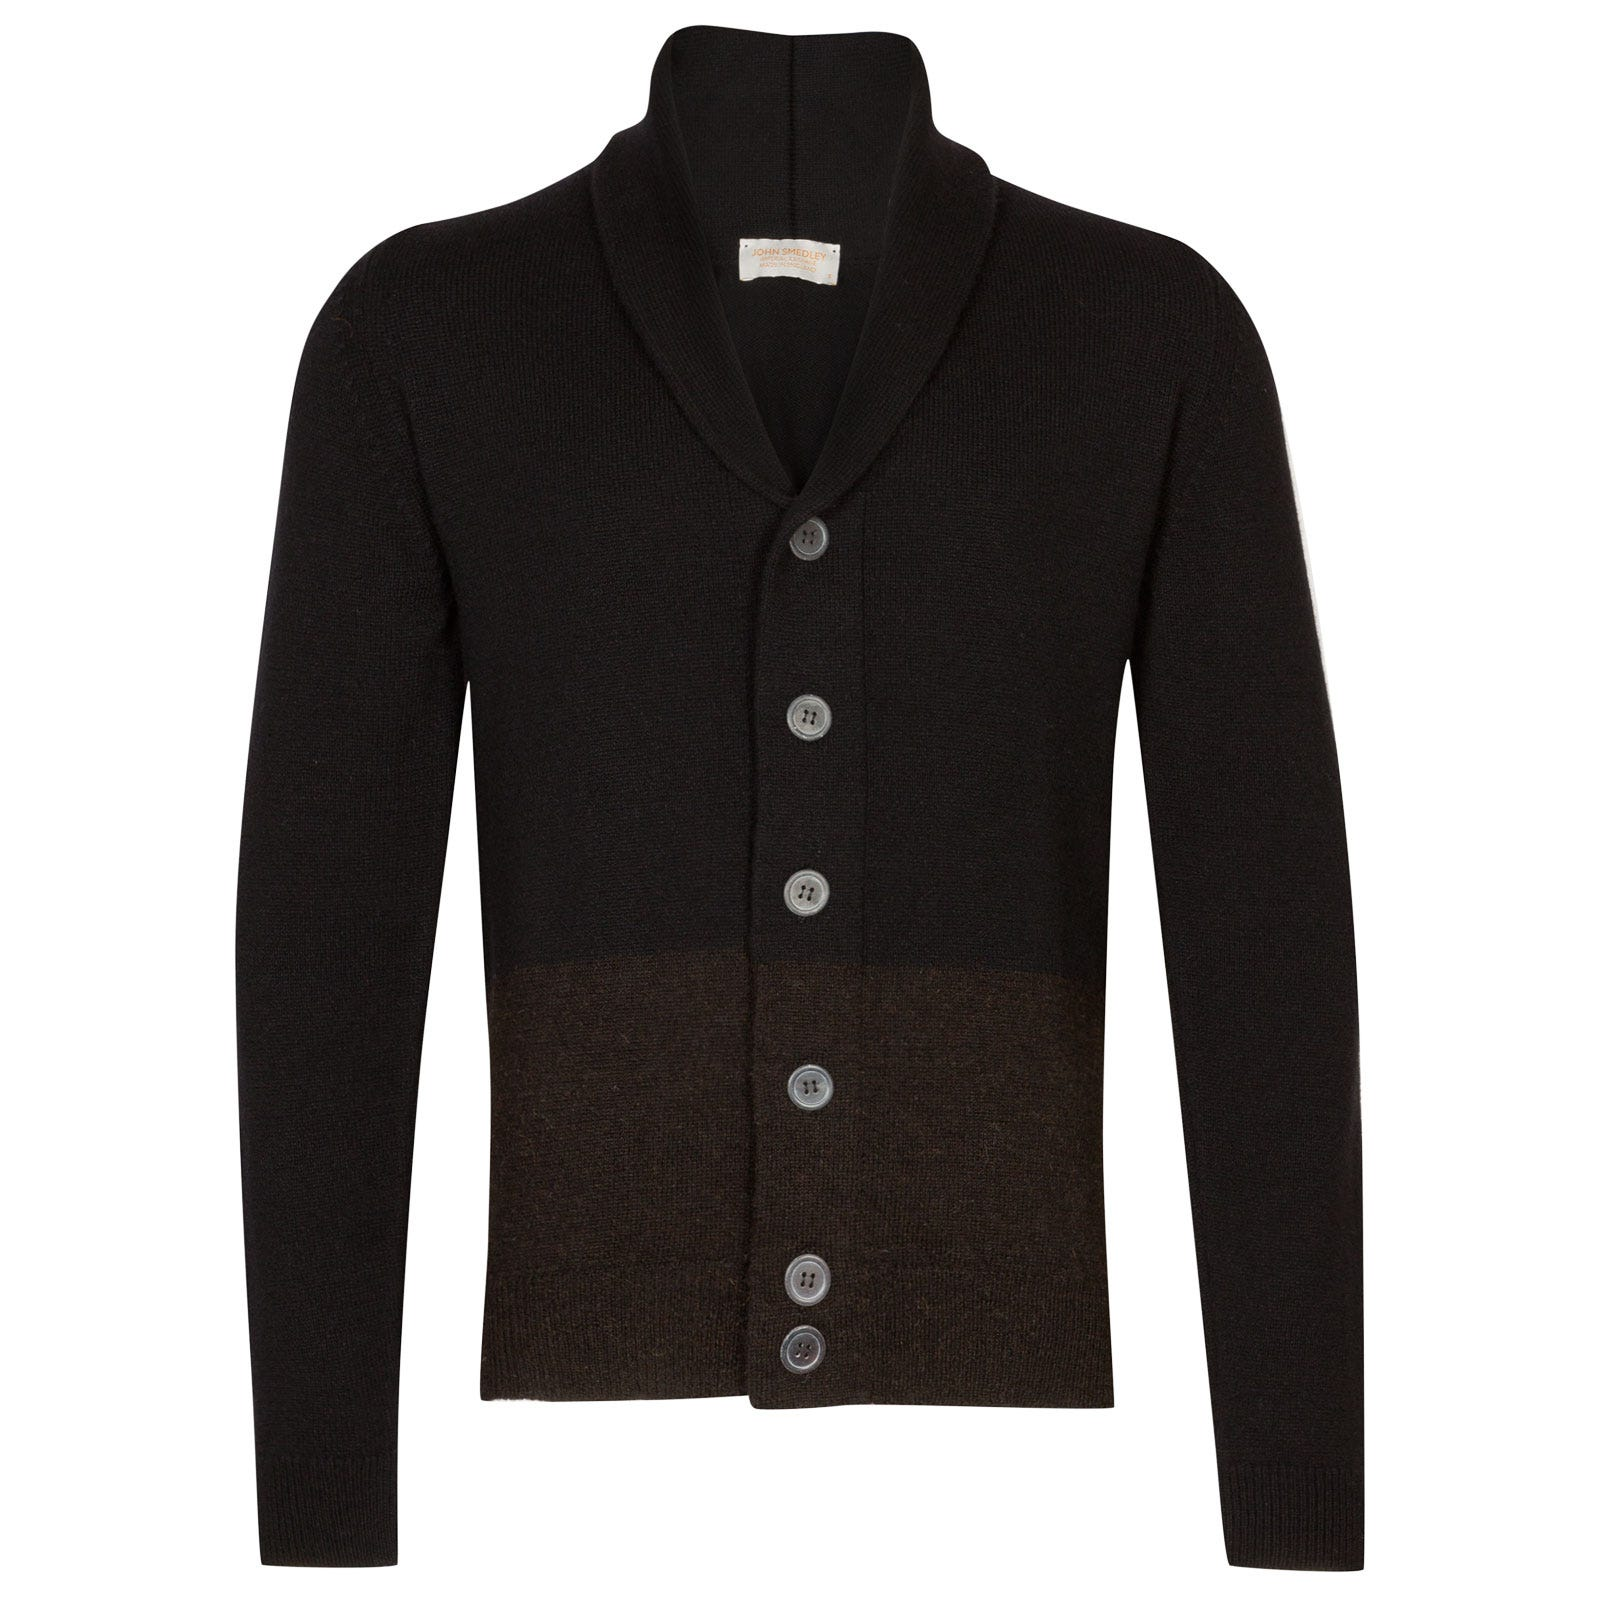 John Smedley cairn British Wool & Cashmere Wool Jacket in Black-S